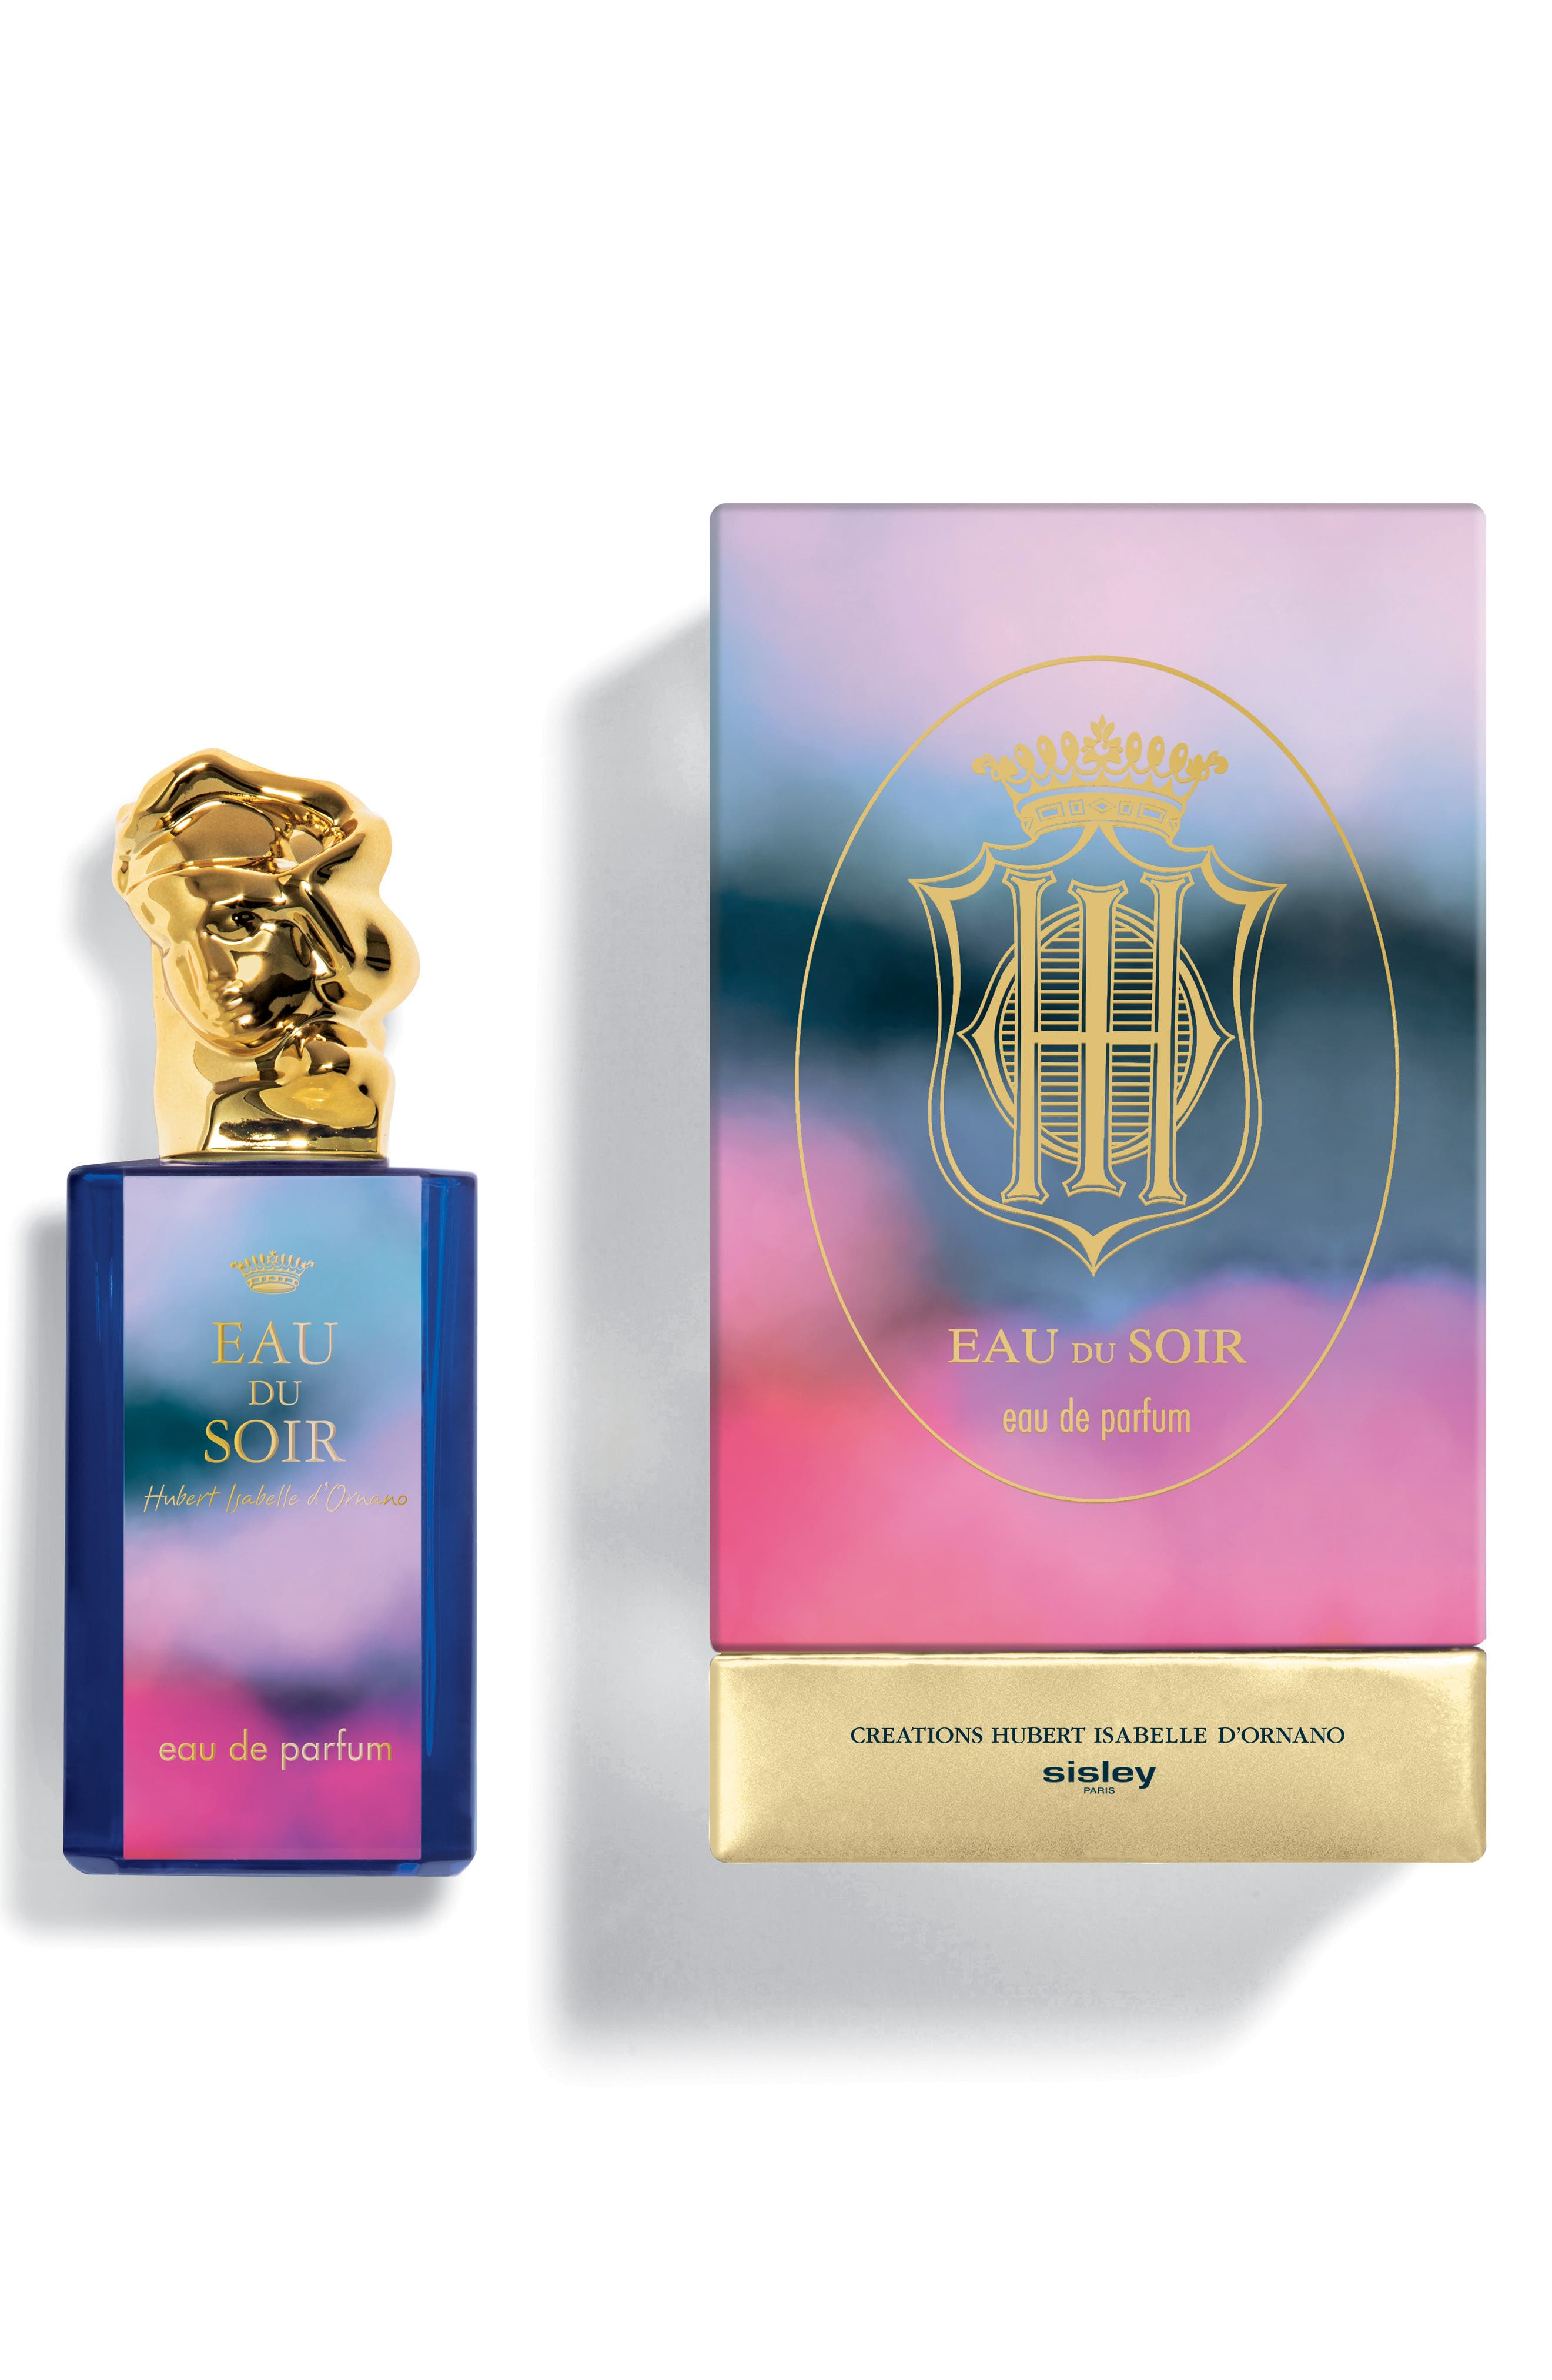 What it is: A limited-edition bottle of Eau du Soir, created in collaboration with French-American artist Sydney Albertini. Fragrance story: Eau du Soir evokes a stroll through the gardens of Alcazar in Seville, at dusk, when the syringa flower exhales its fragrance. A refined eau de parfum, it combines the freshness of citrus with the sensuality of florals, highlighted by an elegant chypre signature. It\\\'s love at first sight between mandarin and